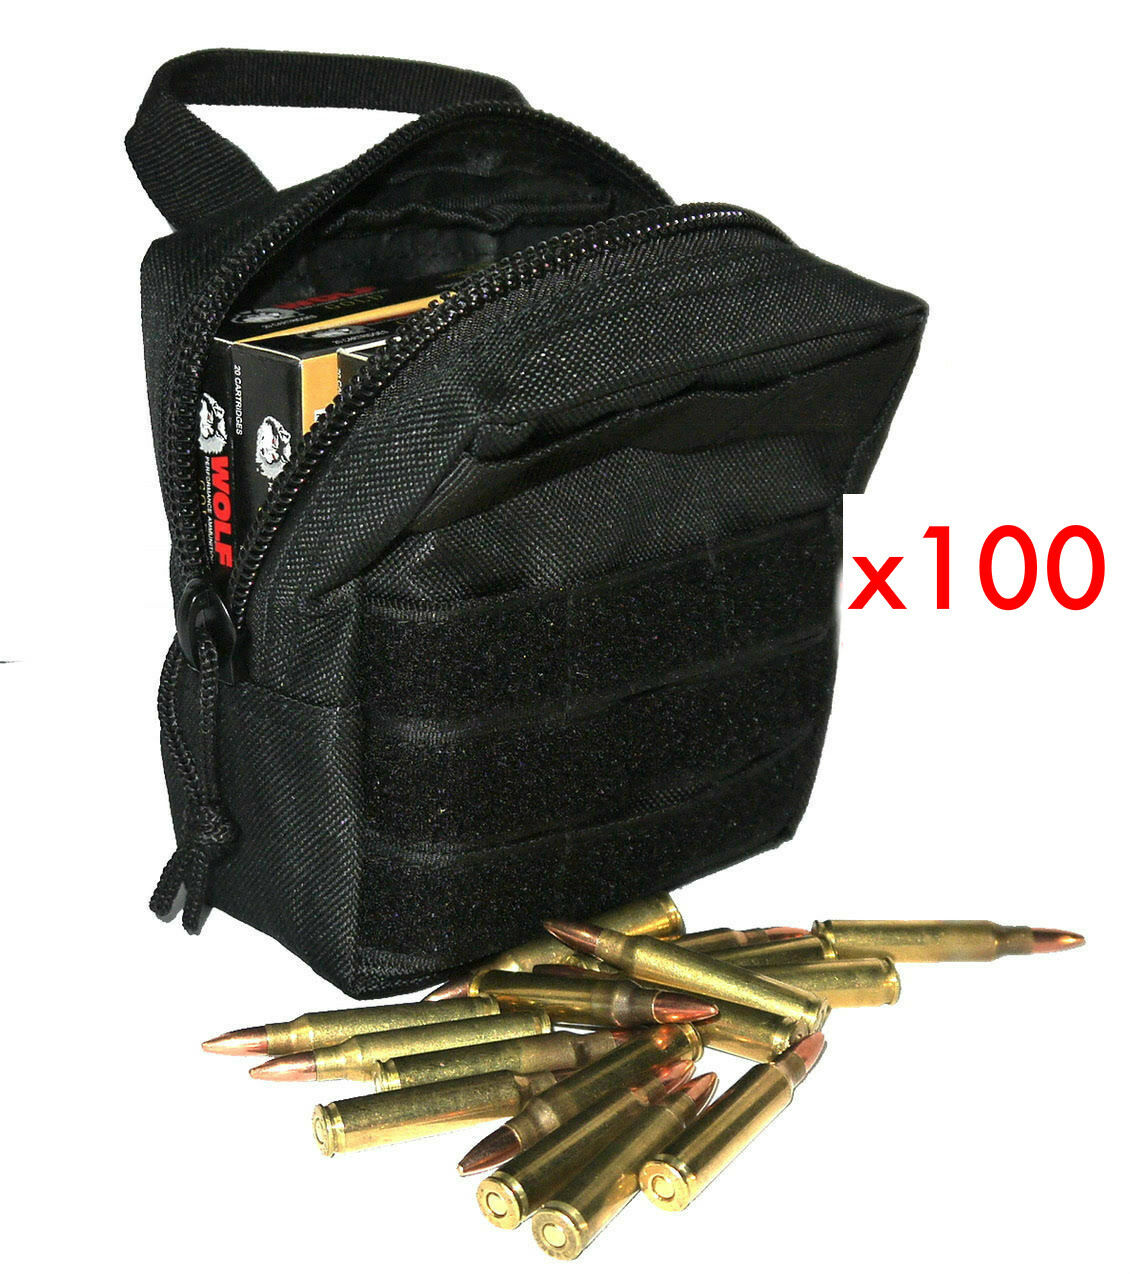 (100) .223 REMINGTON AMMO MODULAR MOLLE UTILITY POUCHES FRONT HOOK LOOP STRAP